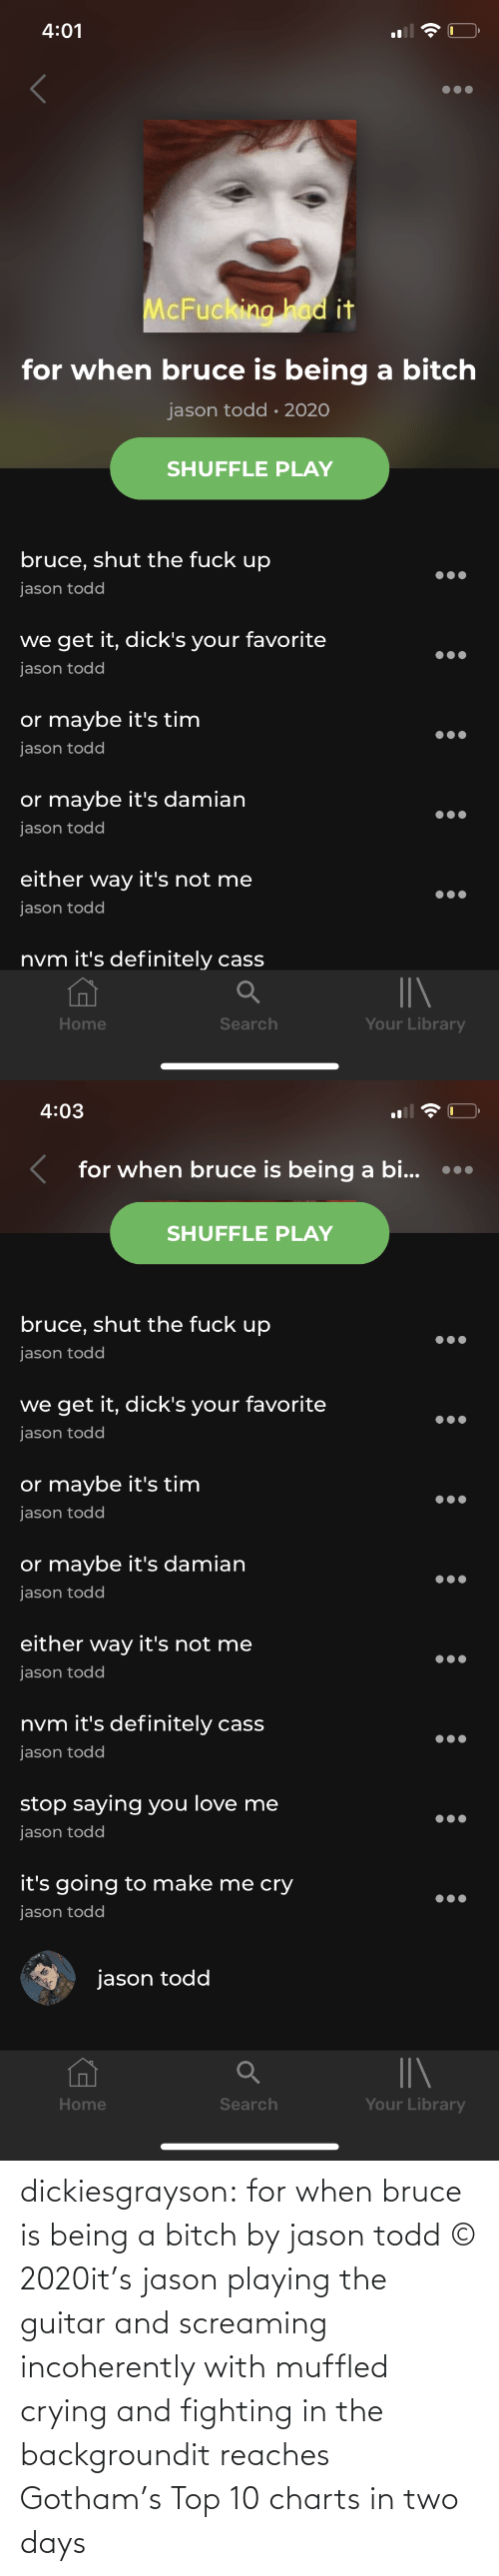 playing: dickiesgrayson:  for when bruce is being a bitch by jason todd © 2020it's jason playing the guitar and screaming incoherently with muffled crying and fighting in the backgroundit reaches Gotham's Top 10 charts in two days